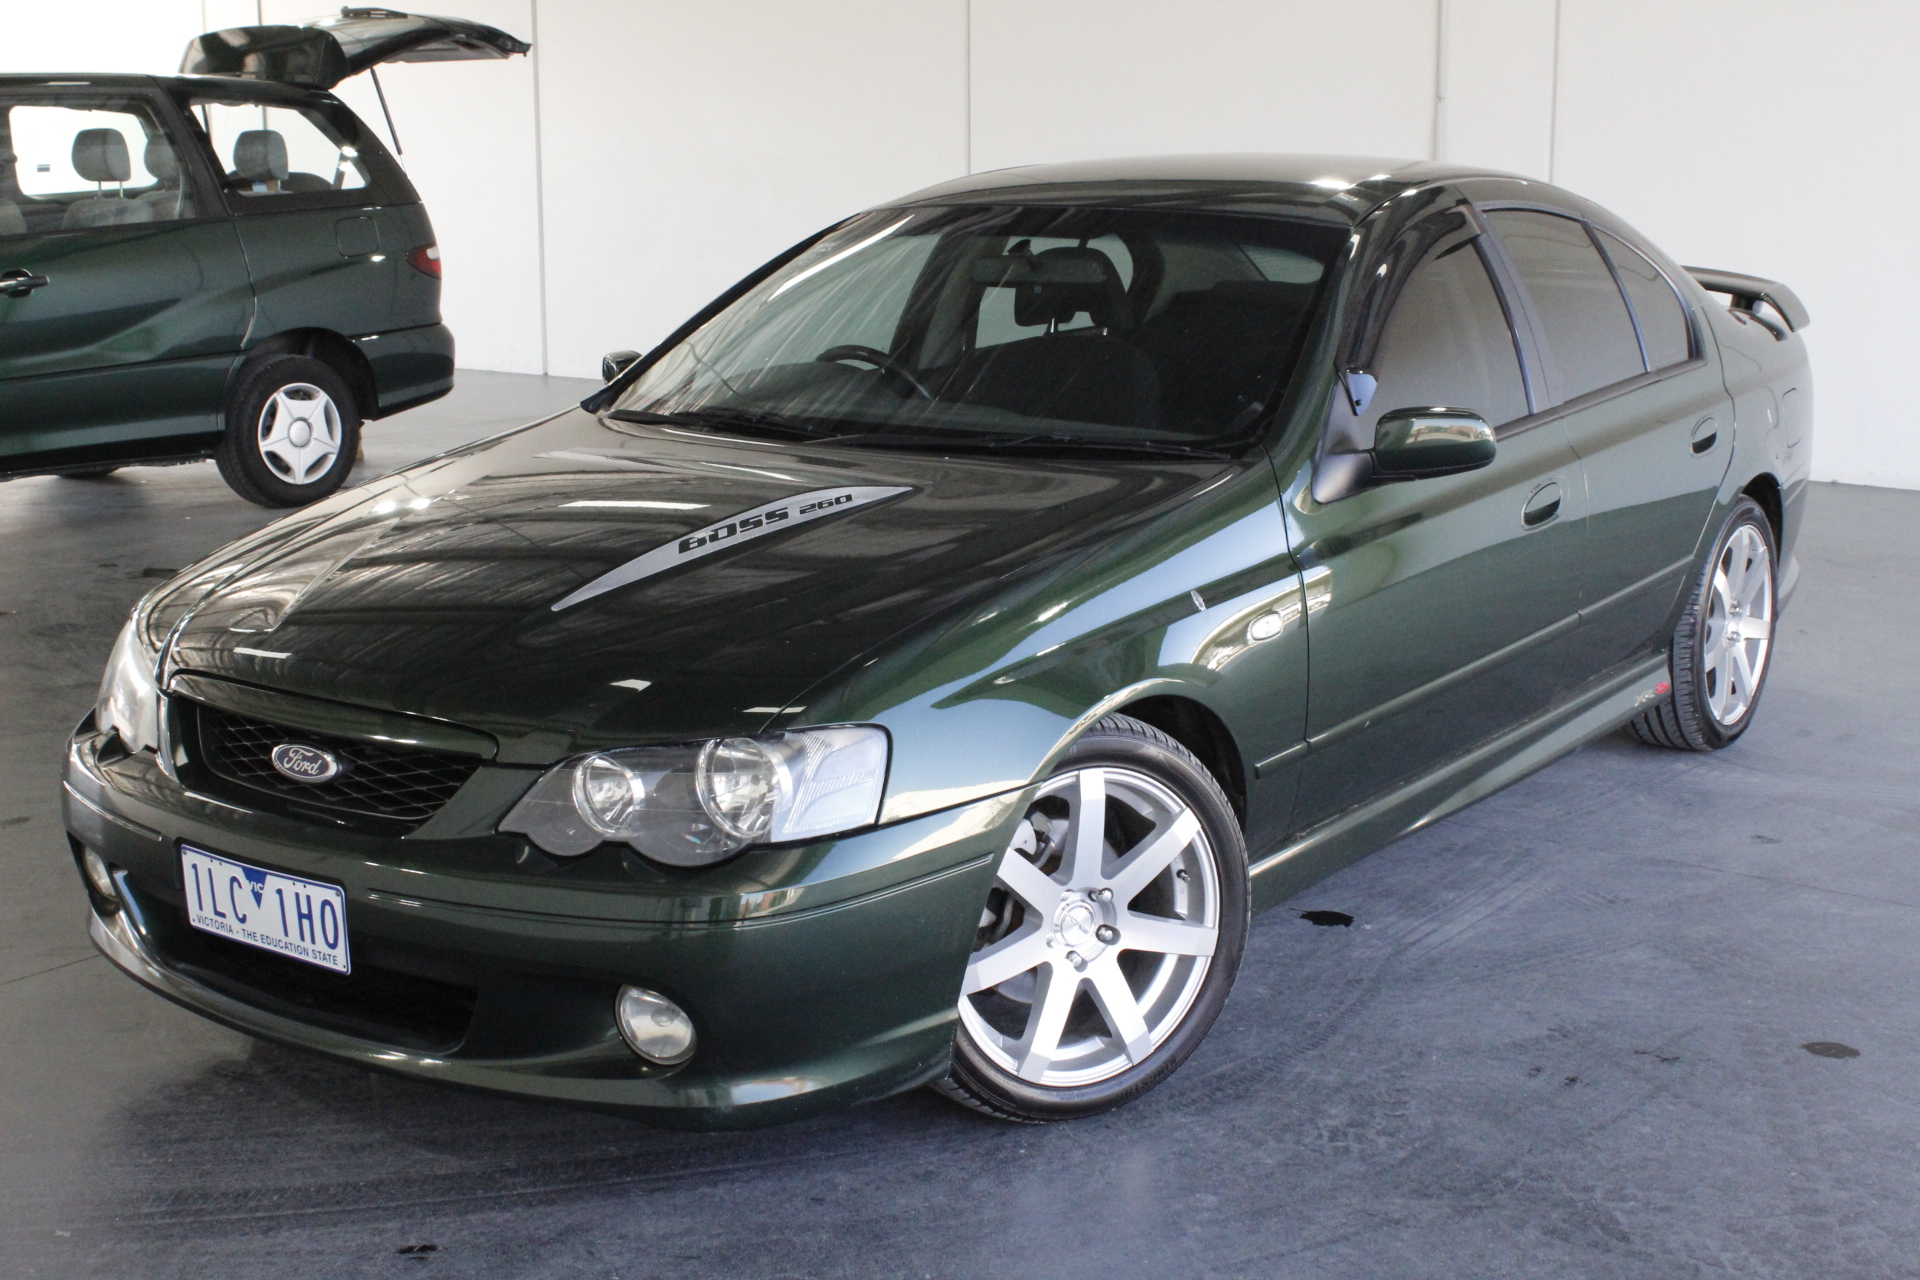 2004 Ford Falcon XR8 BA Manual Sedan Auction (0001-3430207) | GraysOnline  Australia